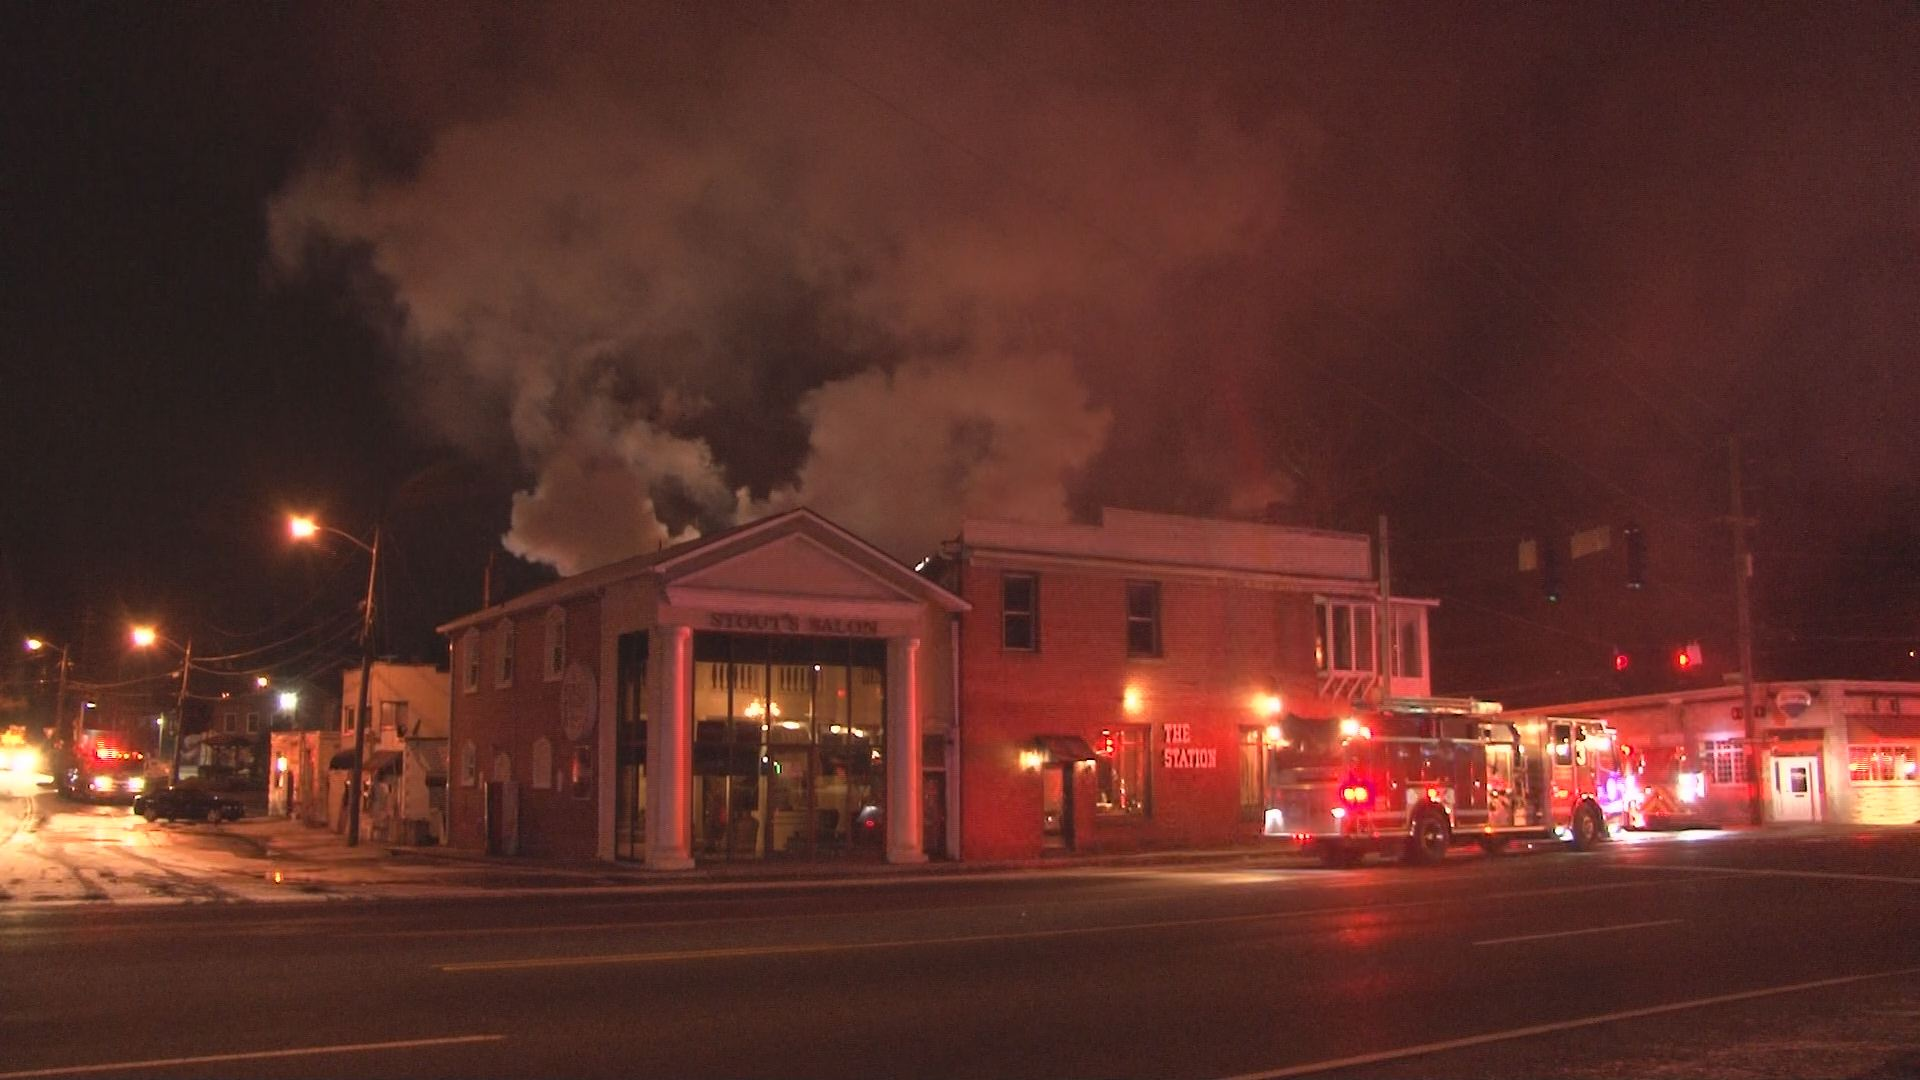 Fountain City's Creamery damaged by fire